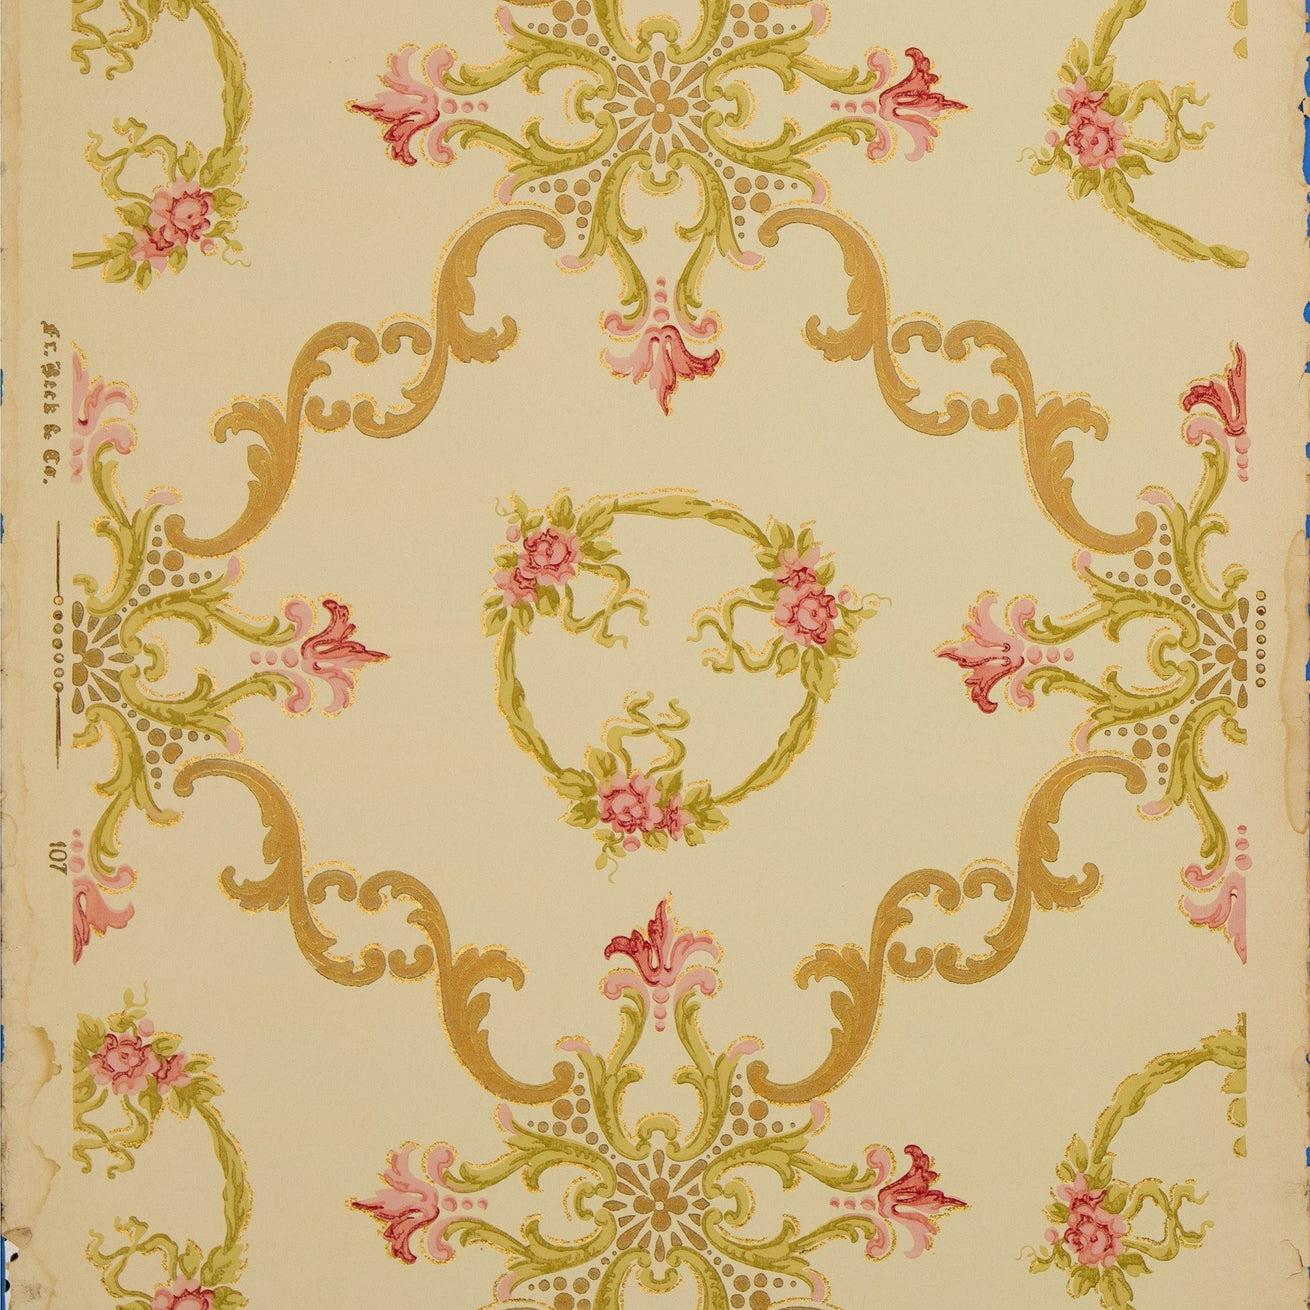 Scrolls, Wreaths and Rose Clusters - Antique Wallpaper Remnant